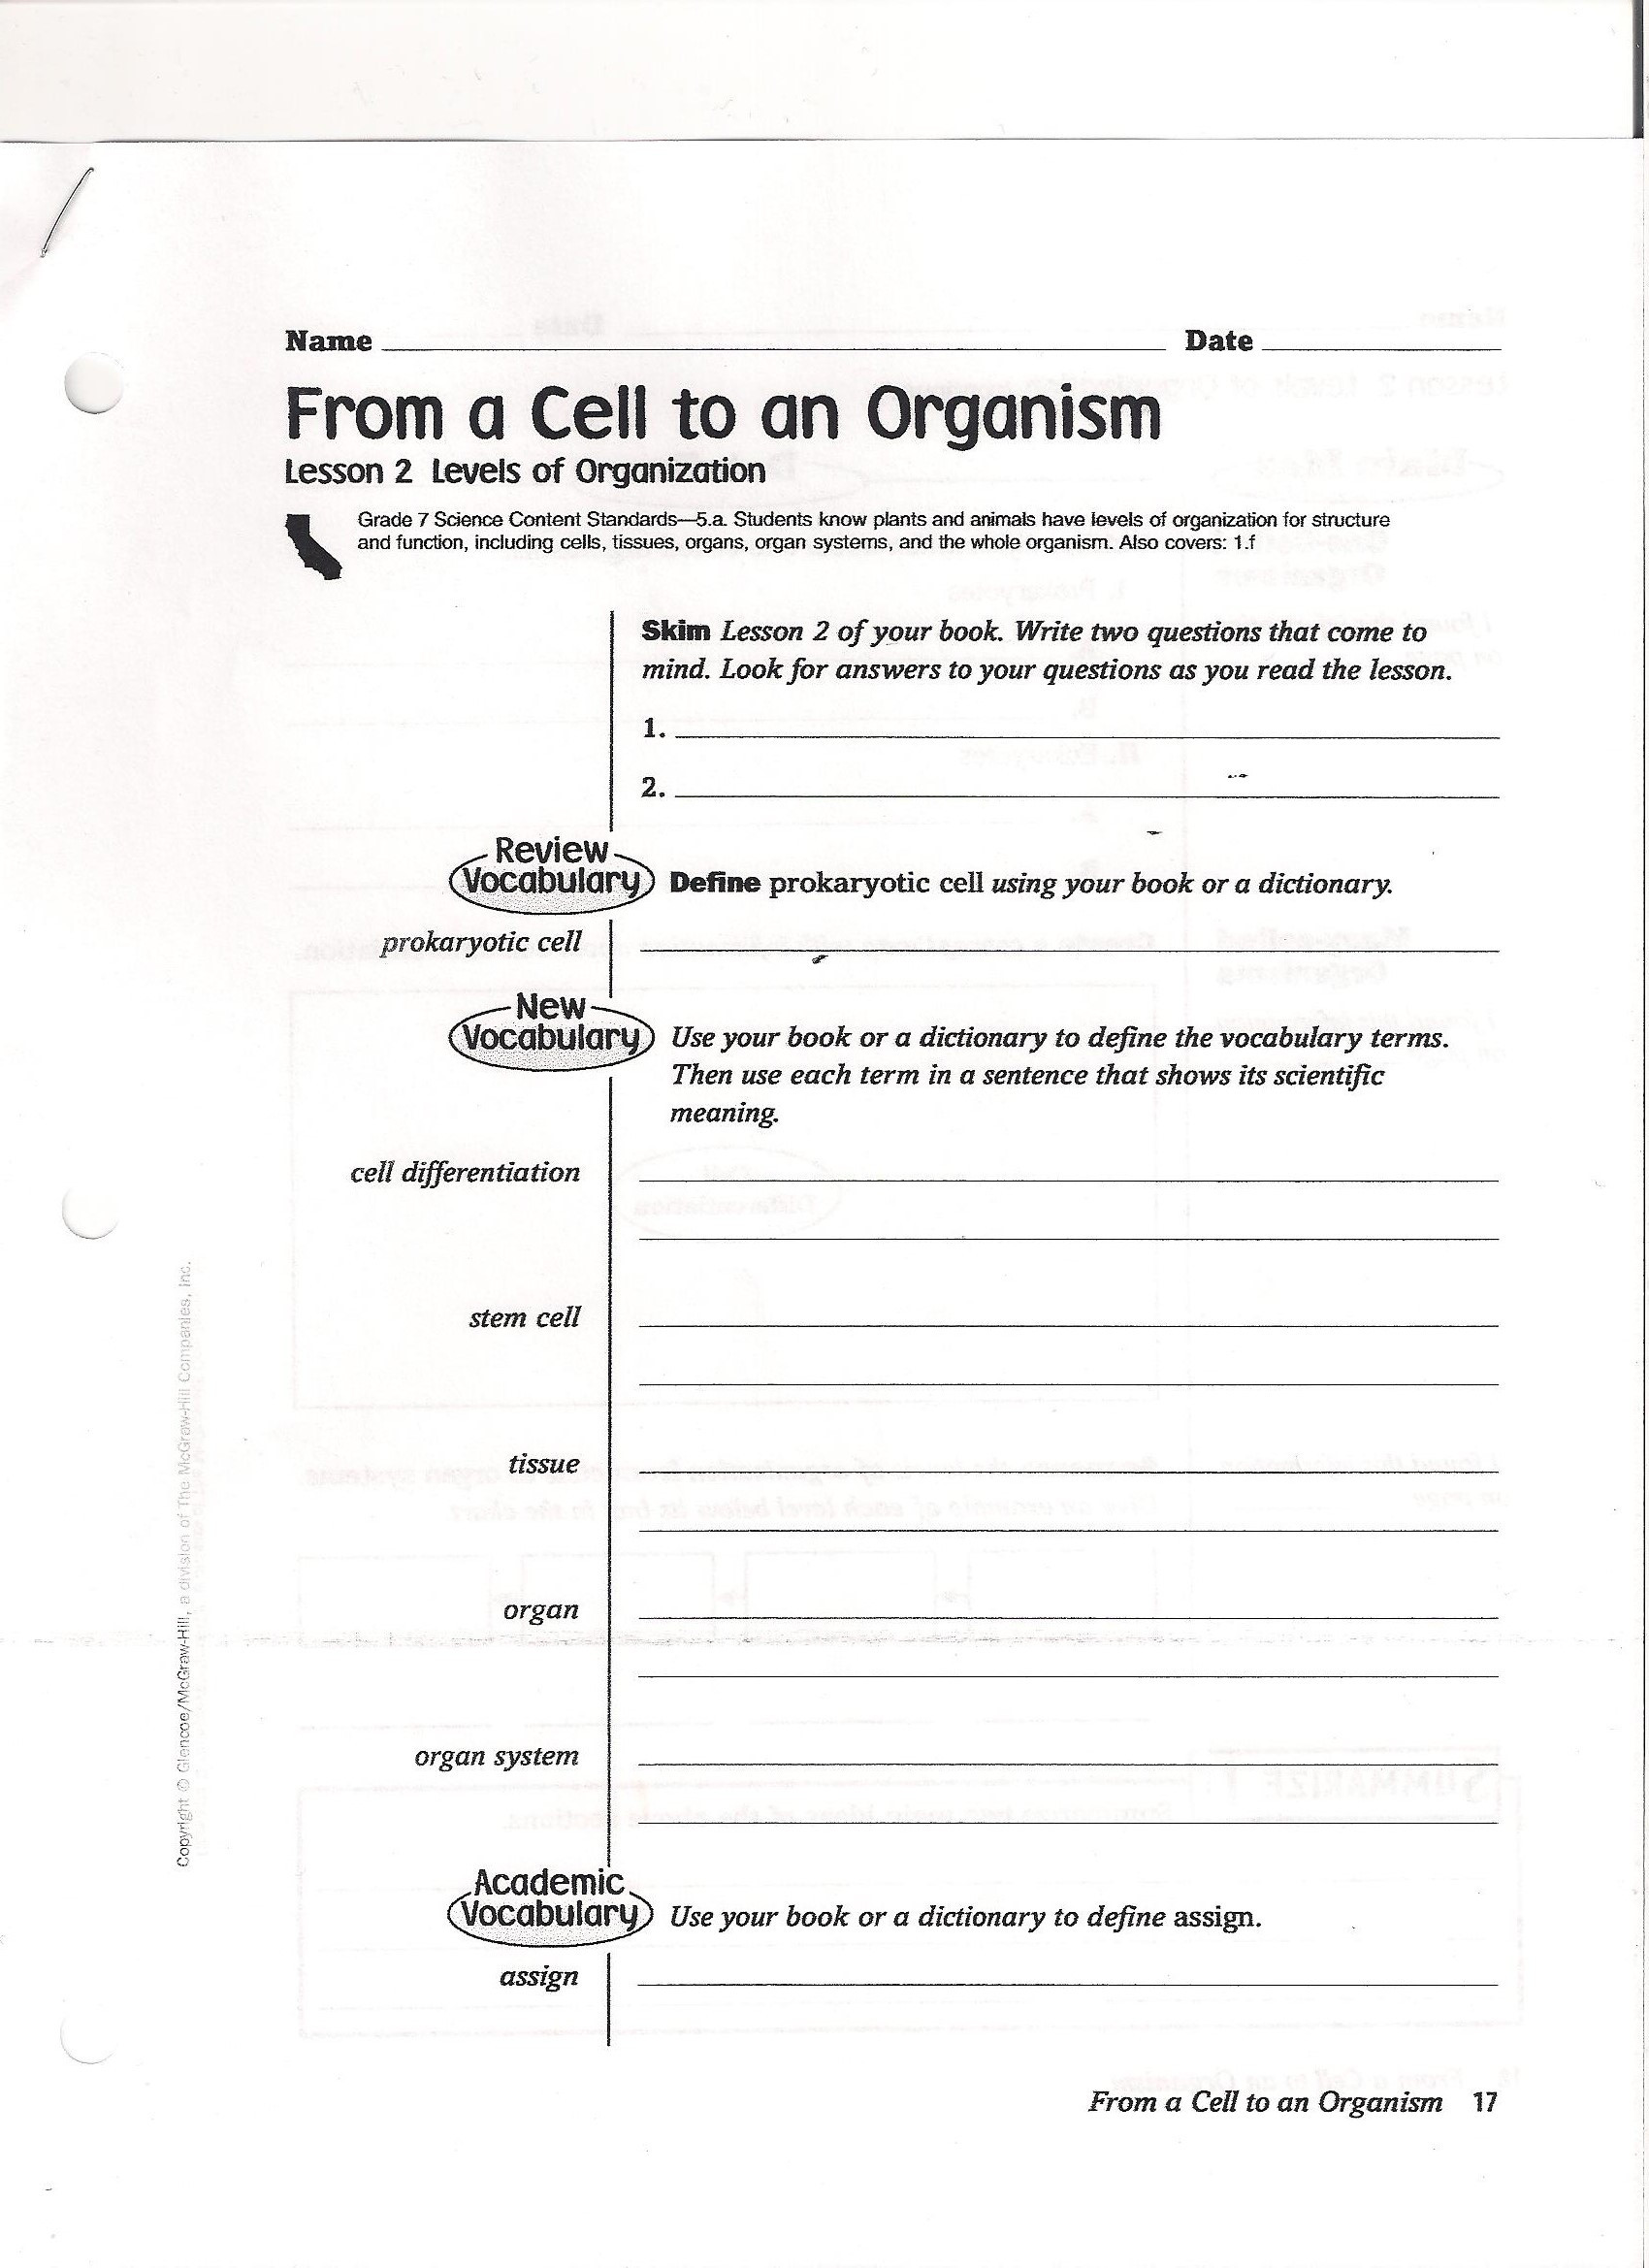 7th Grade Life Science Worksheets Unique What is Life Science Worksheet